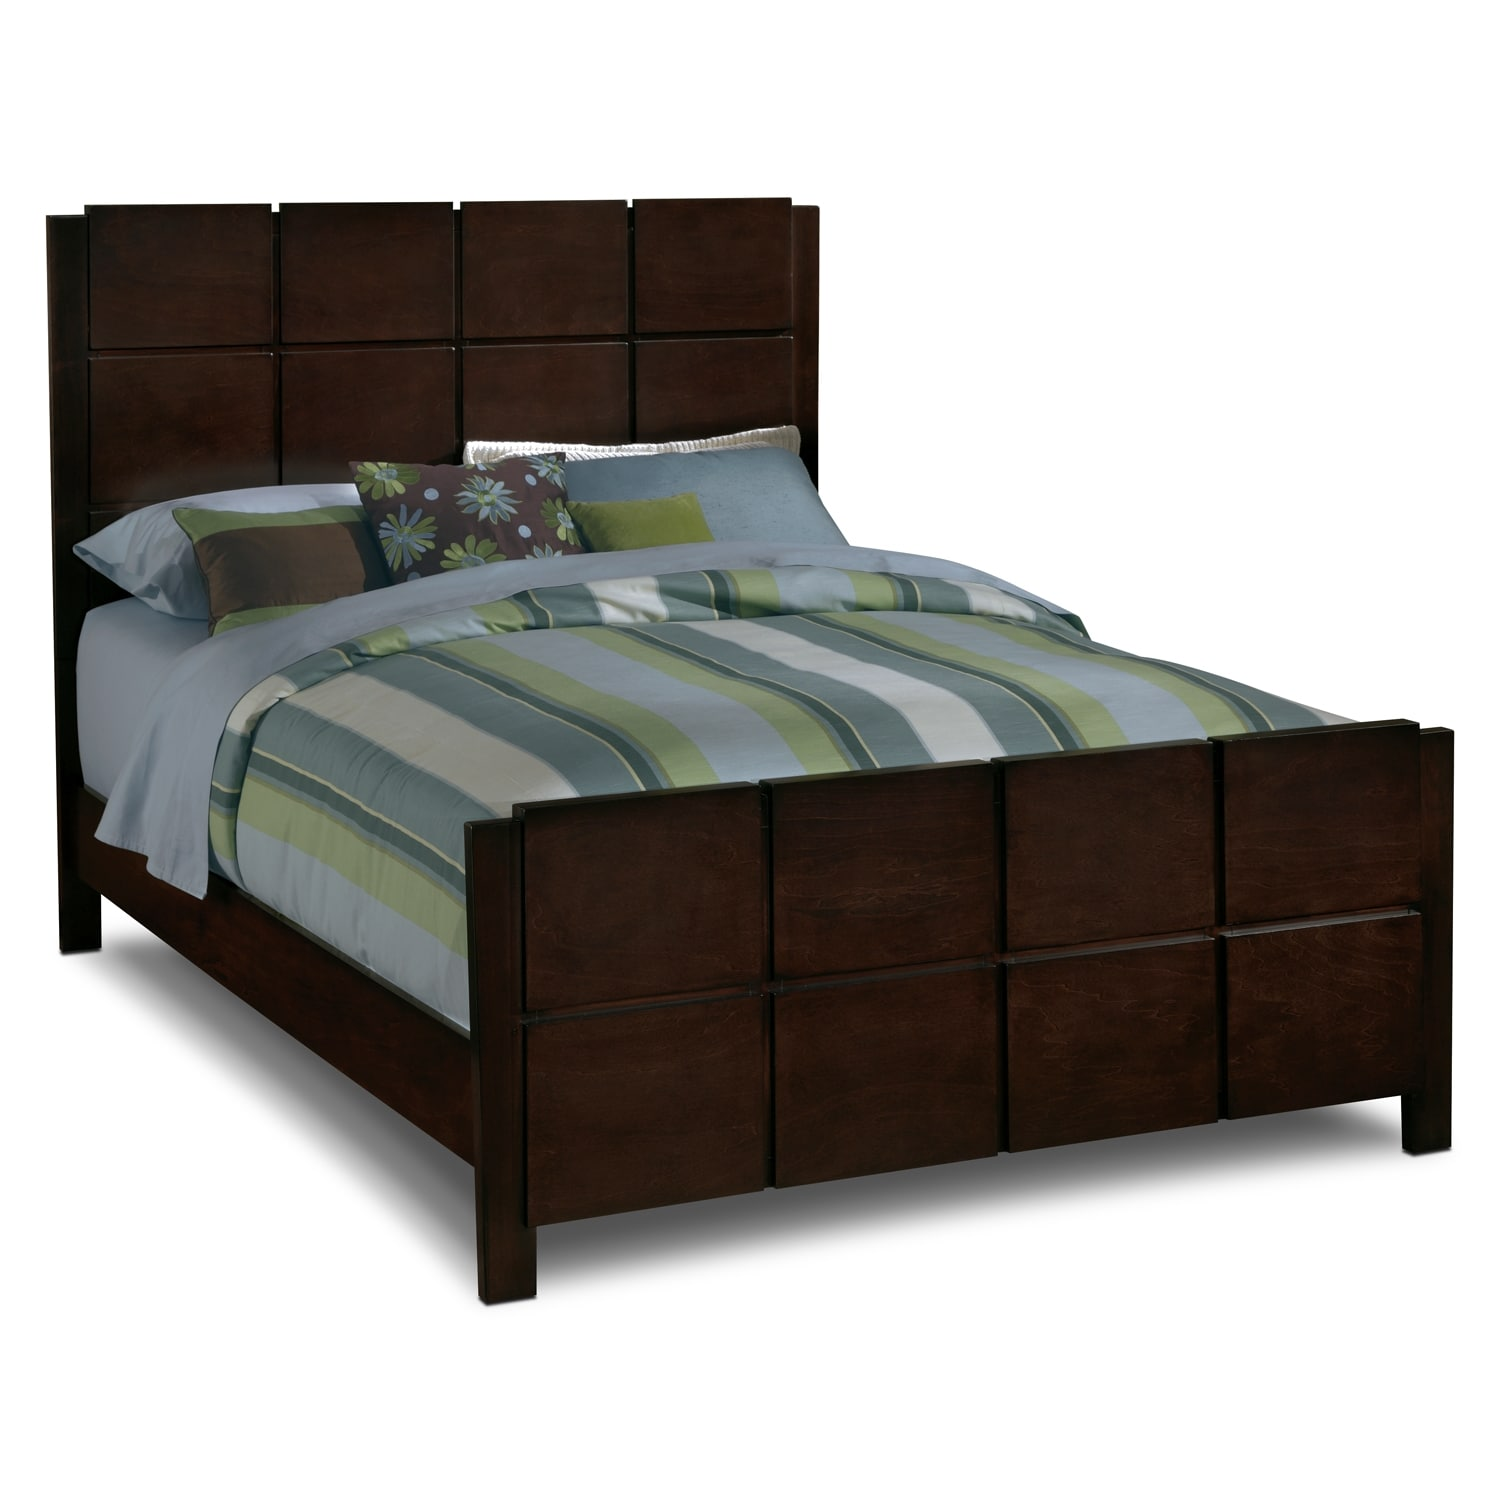 Mosaic 5 piece queen bedroom set dark brown value city for C furniture warehouse